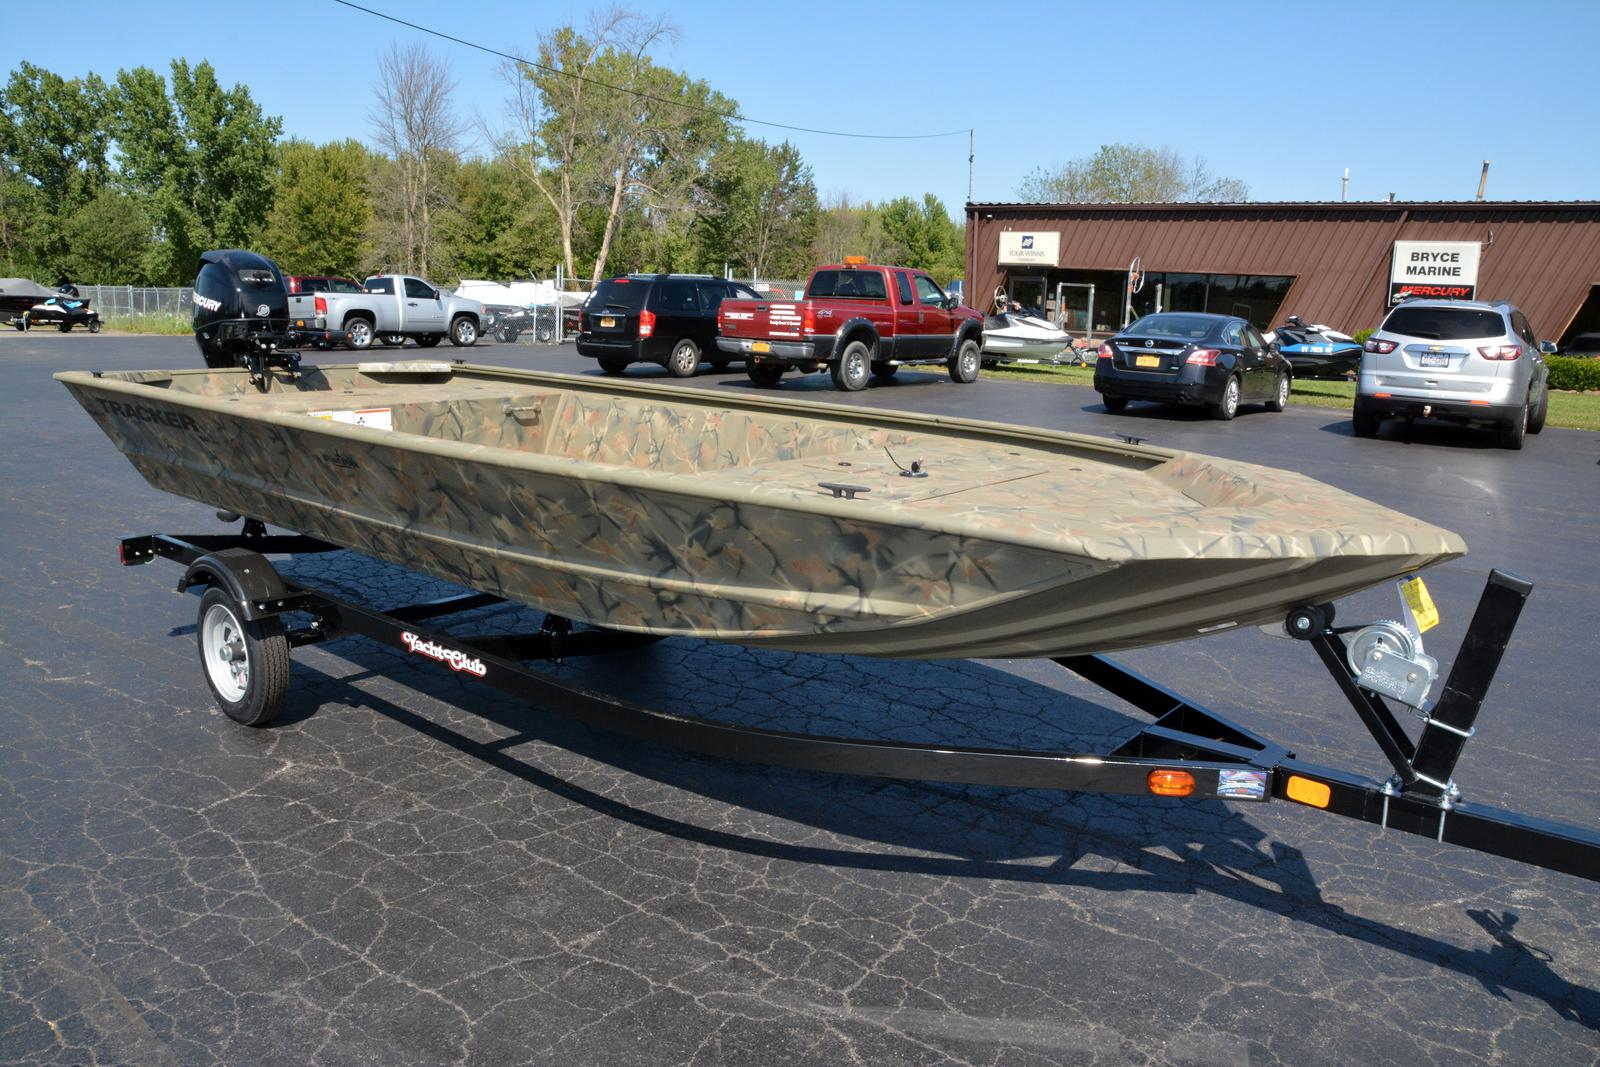 Used Utility Boats For Sale - Page 1 of 53   Boat Buys